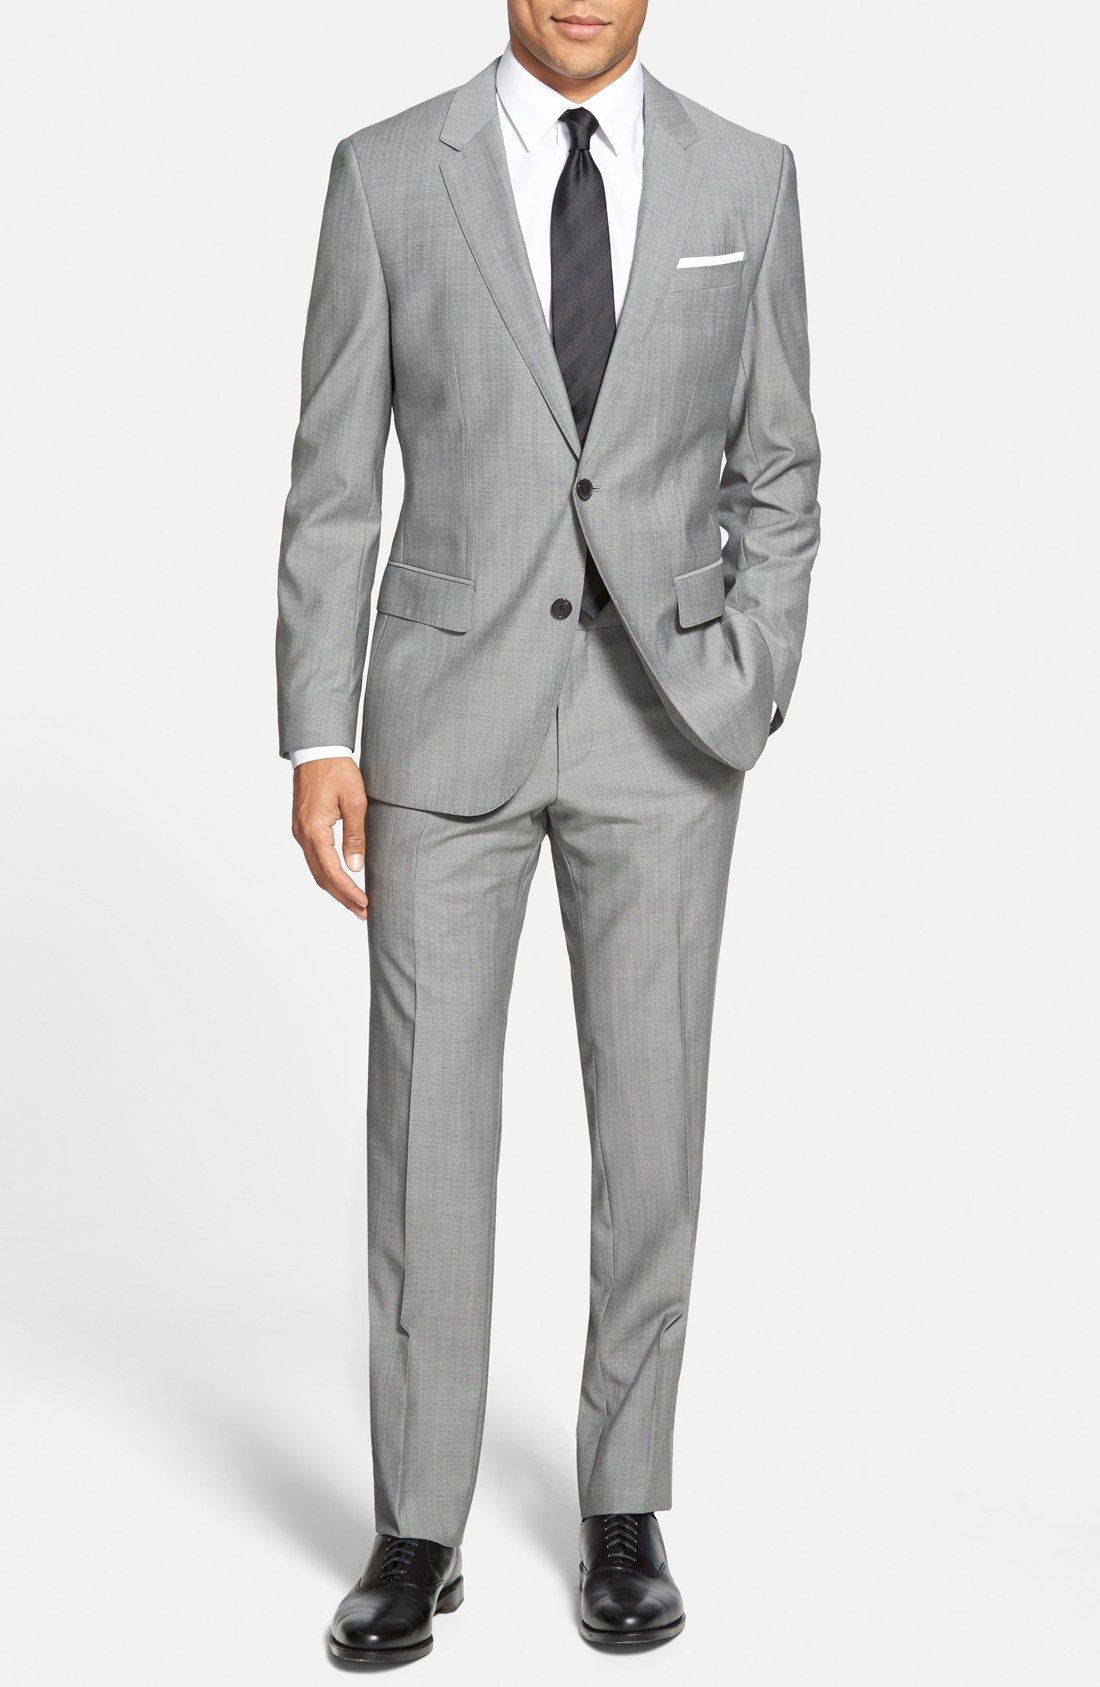 bc112582 Boys colors...grey suit, black tie (maybe brown shoes?) | Men's in ...